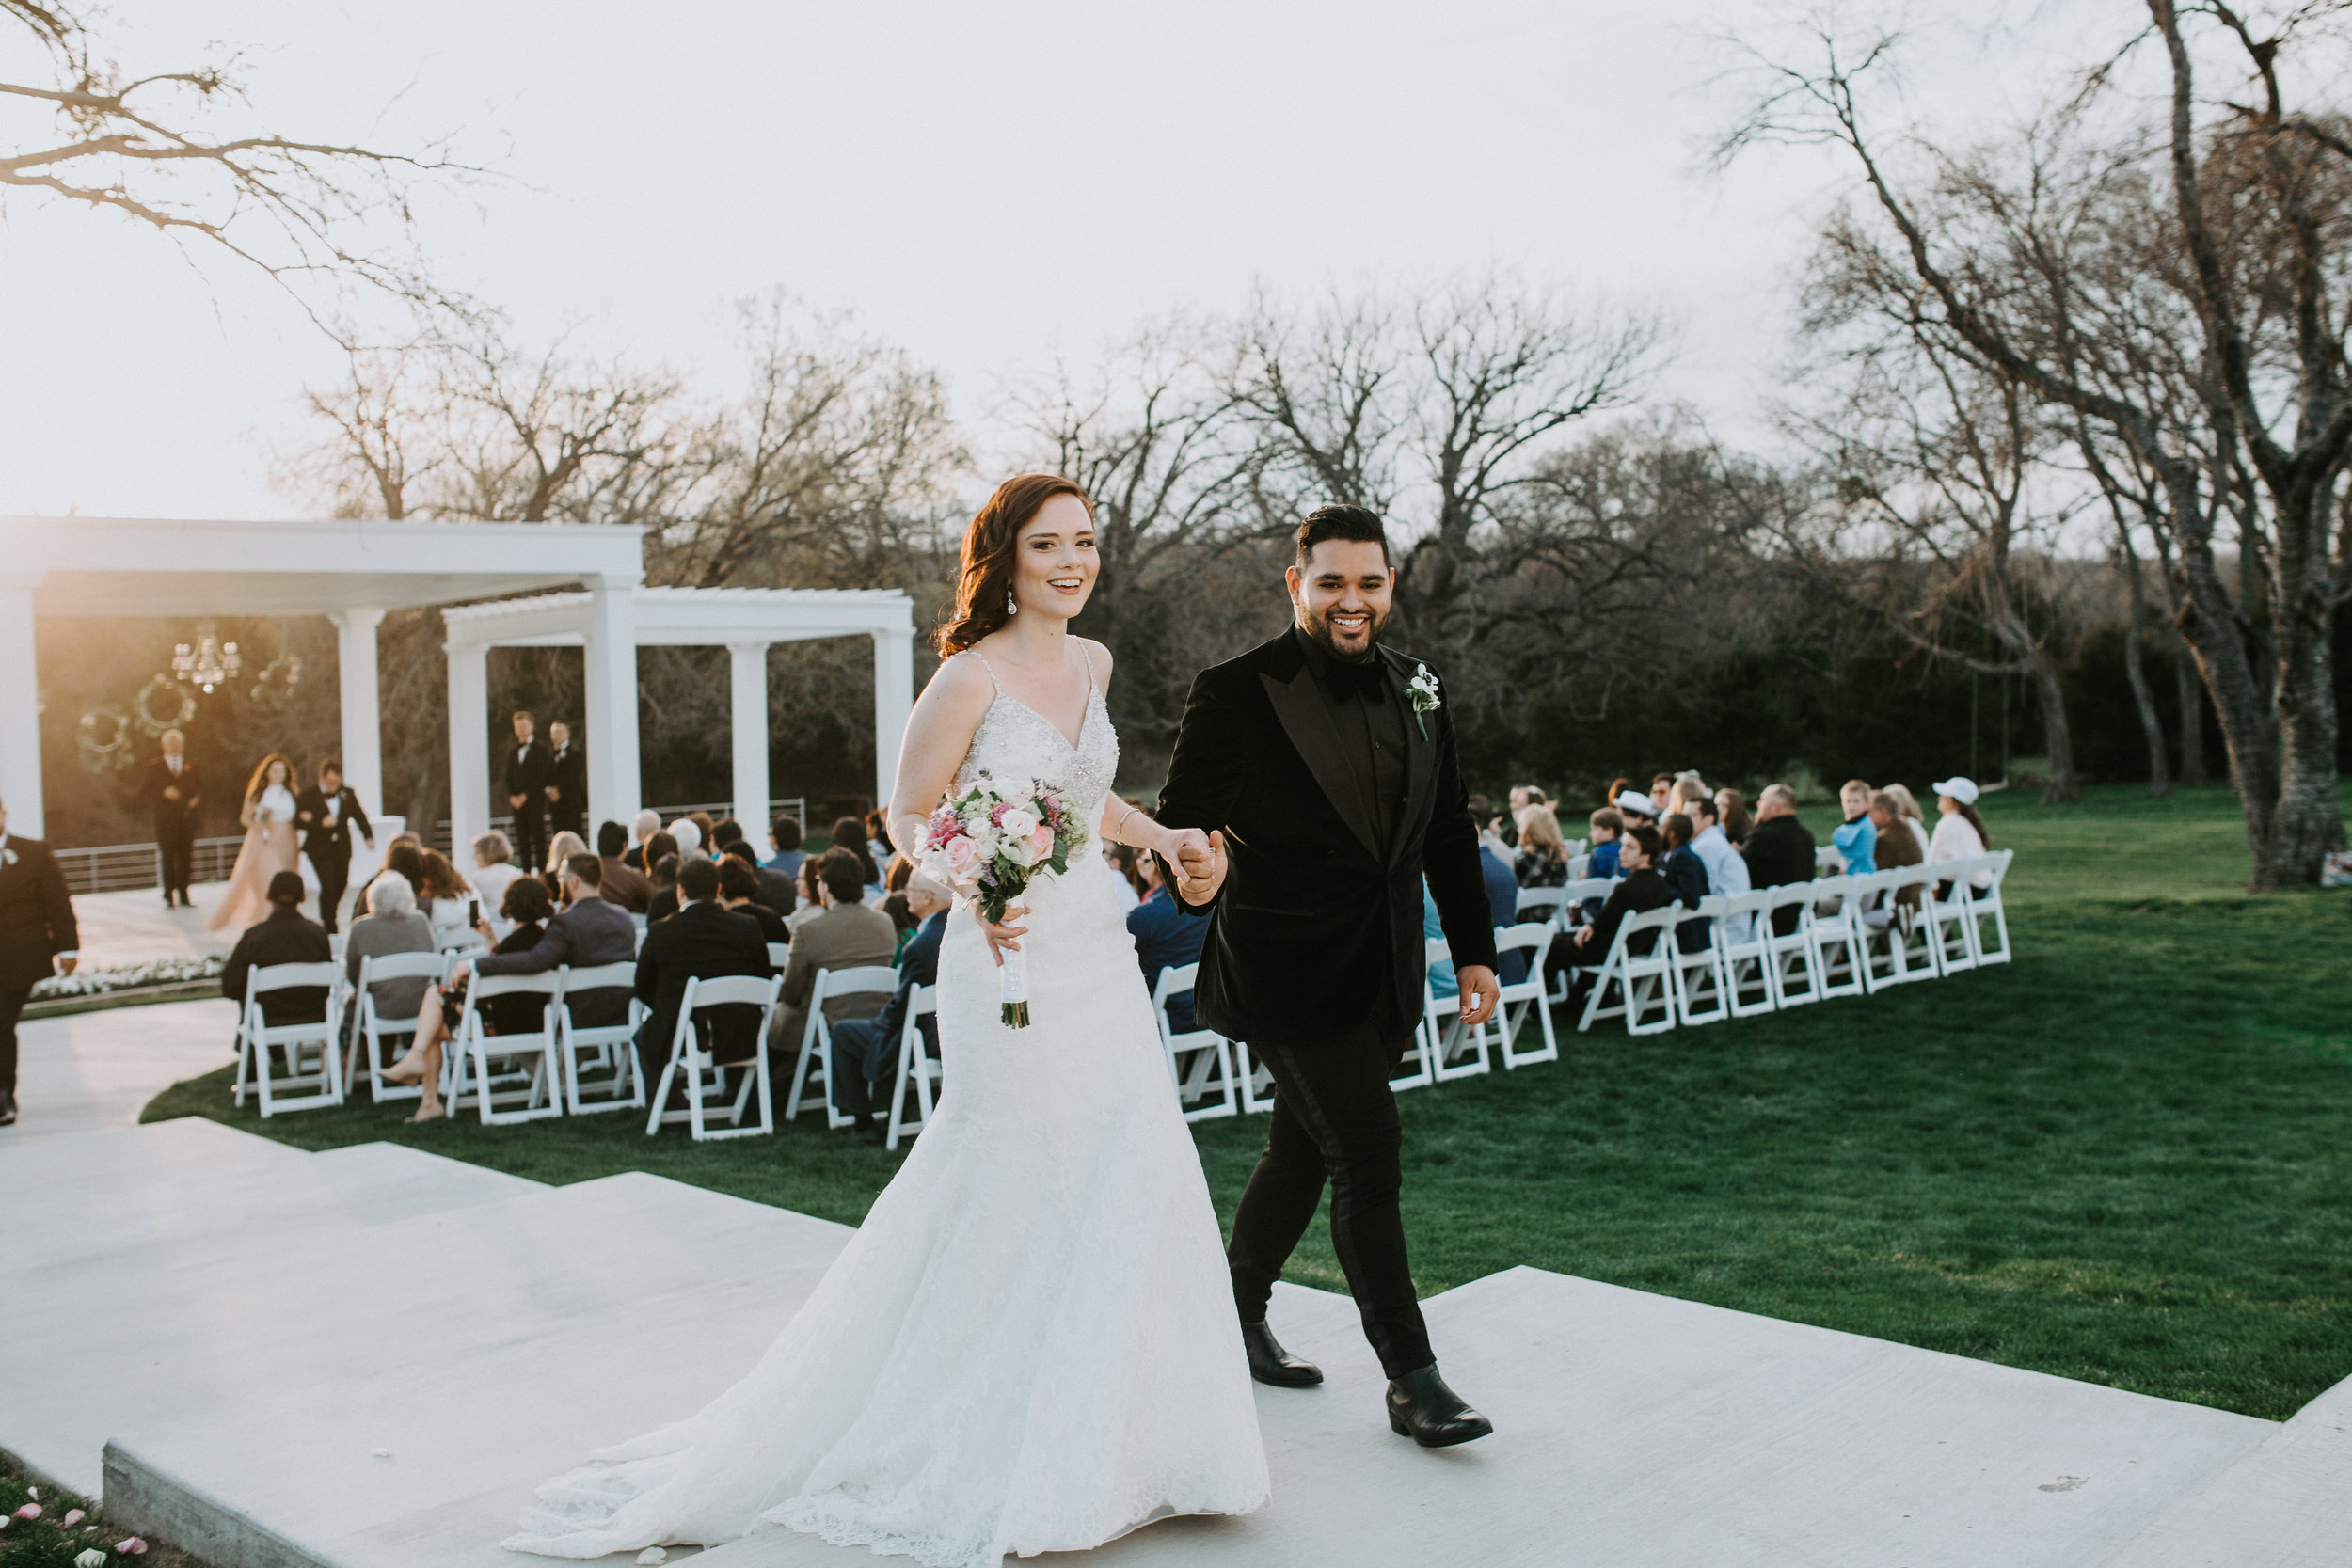 LEILA & ANDREW - DALLAS WEDDING